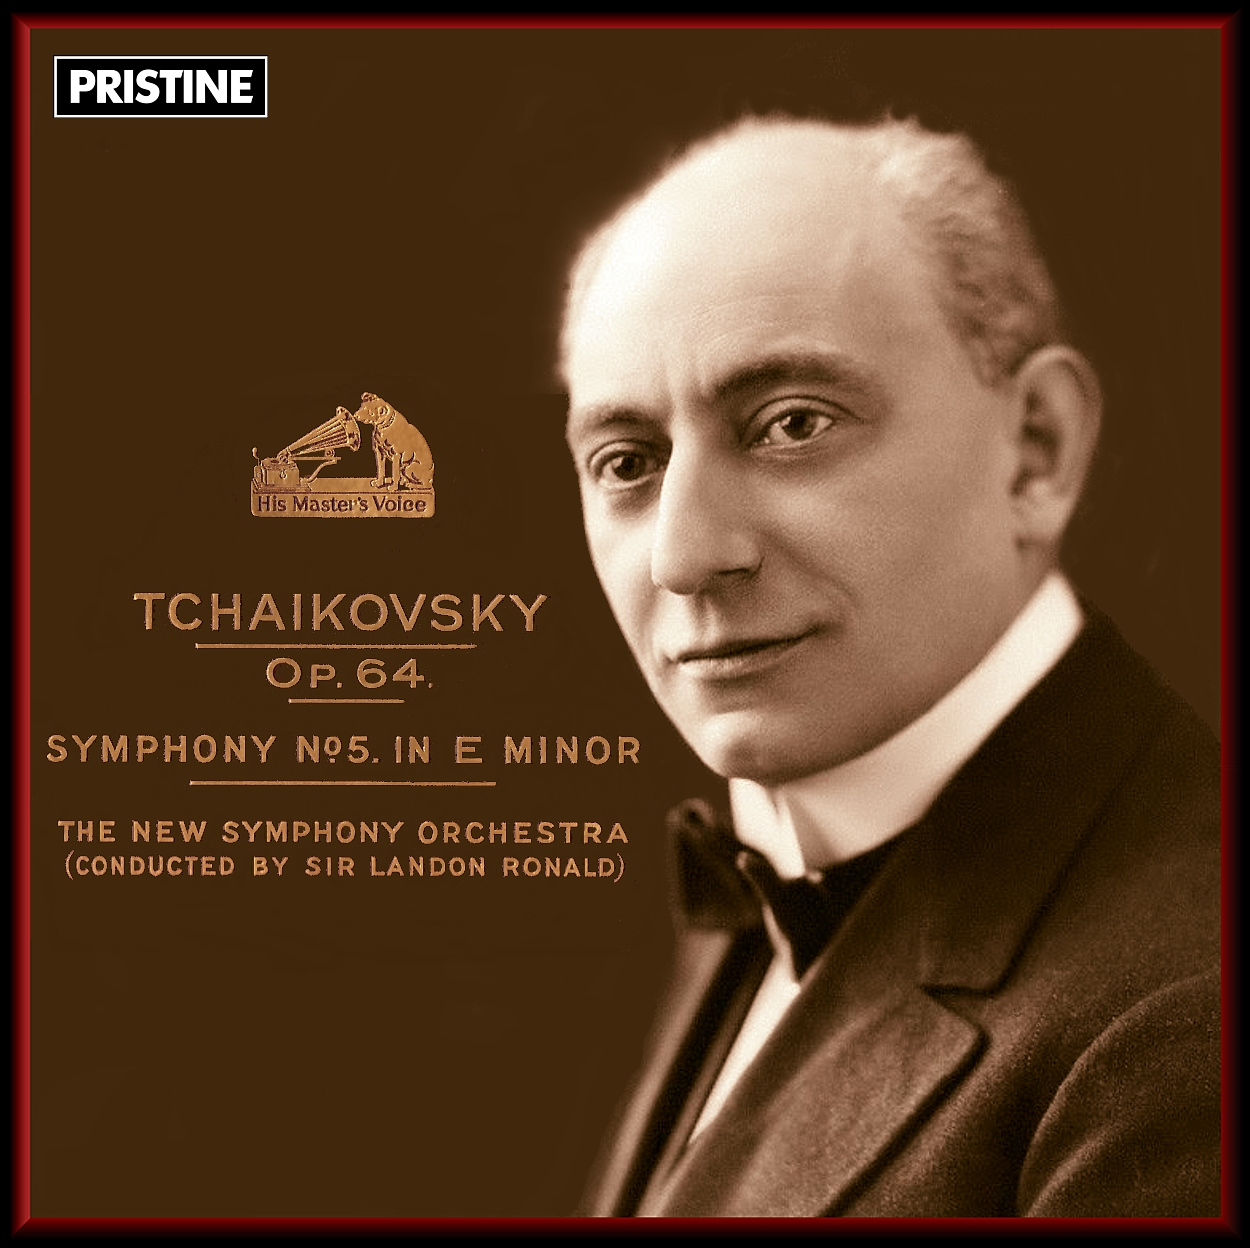 Tchaikovsky - Symphony No. 5 in E minor